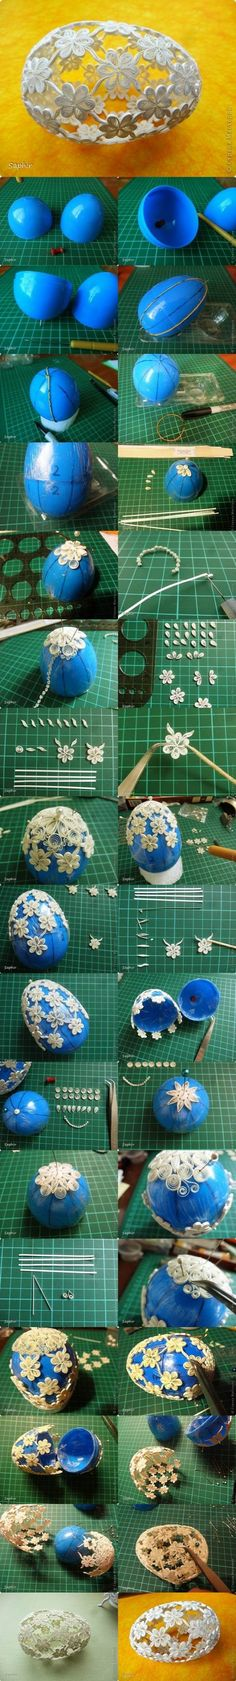 Breathable Easter Eggs With Quilling Technique